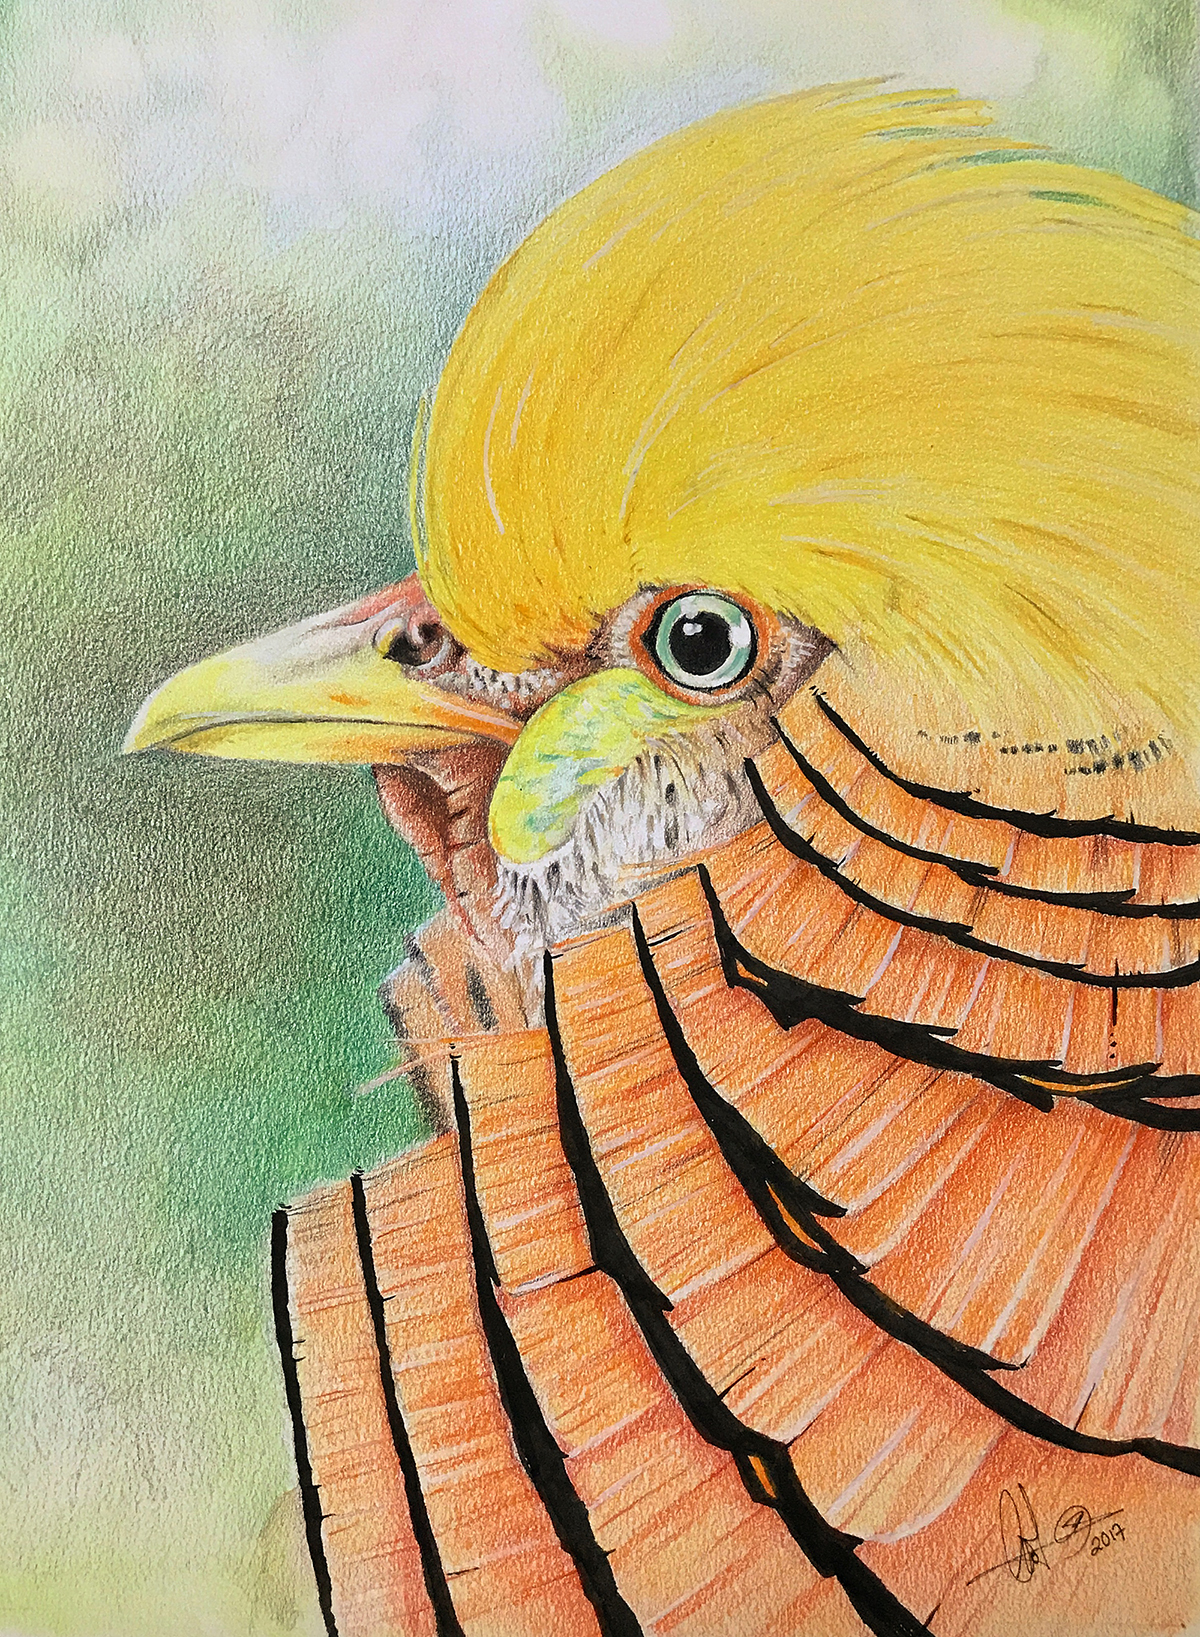 Golden Pheasant. Color pencils on tonedn paper